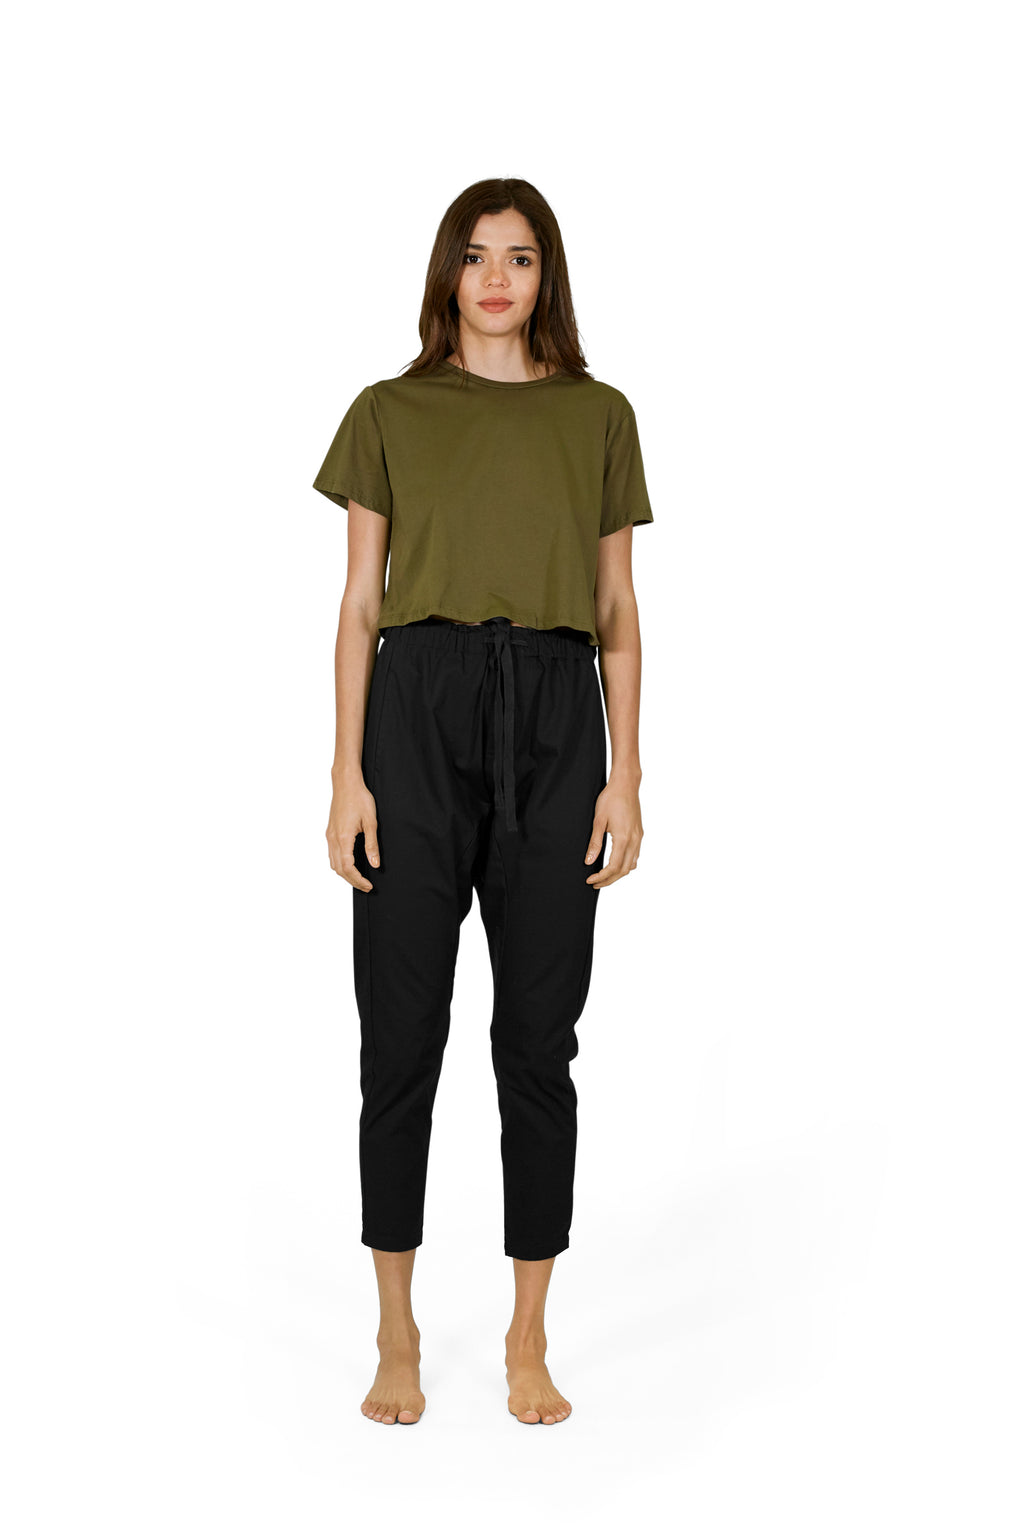 SanBasic Crop Tee